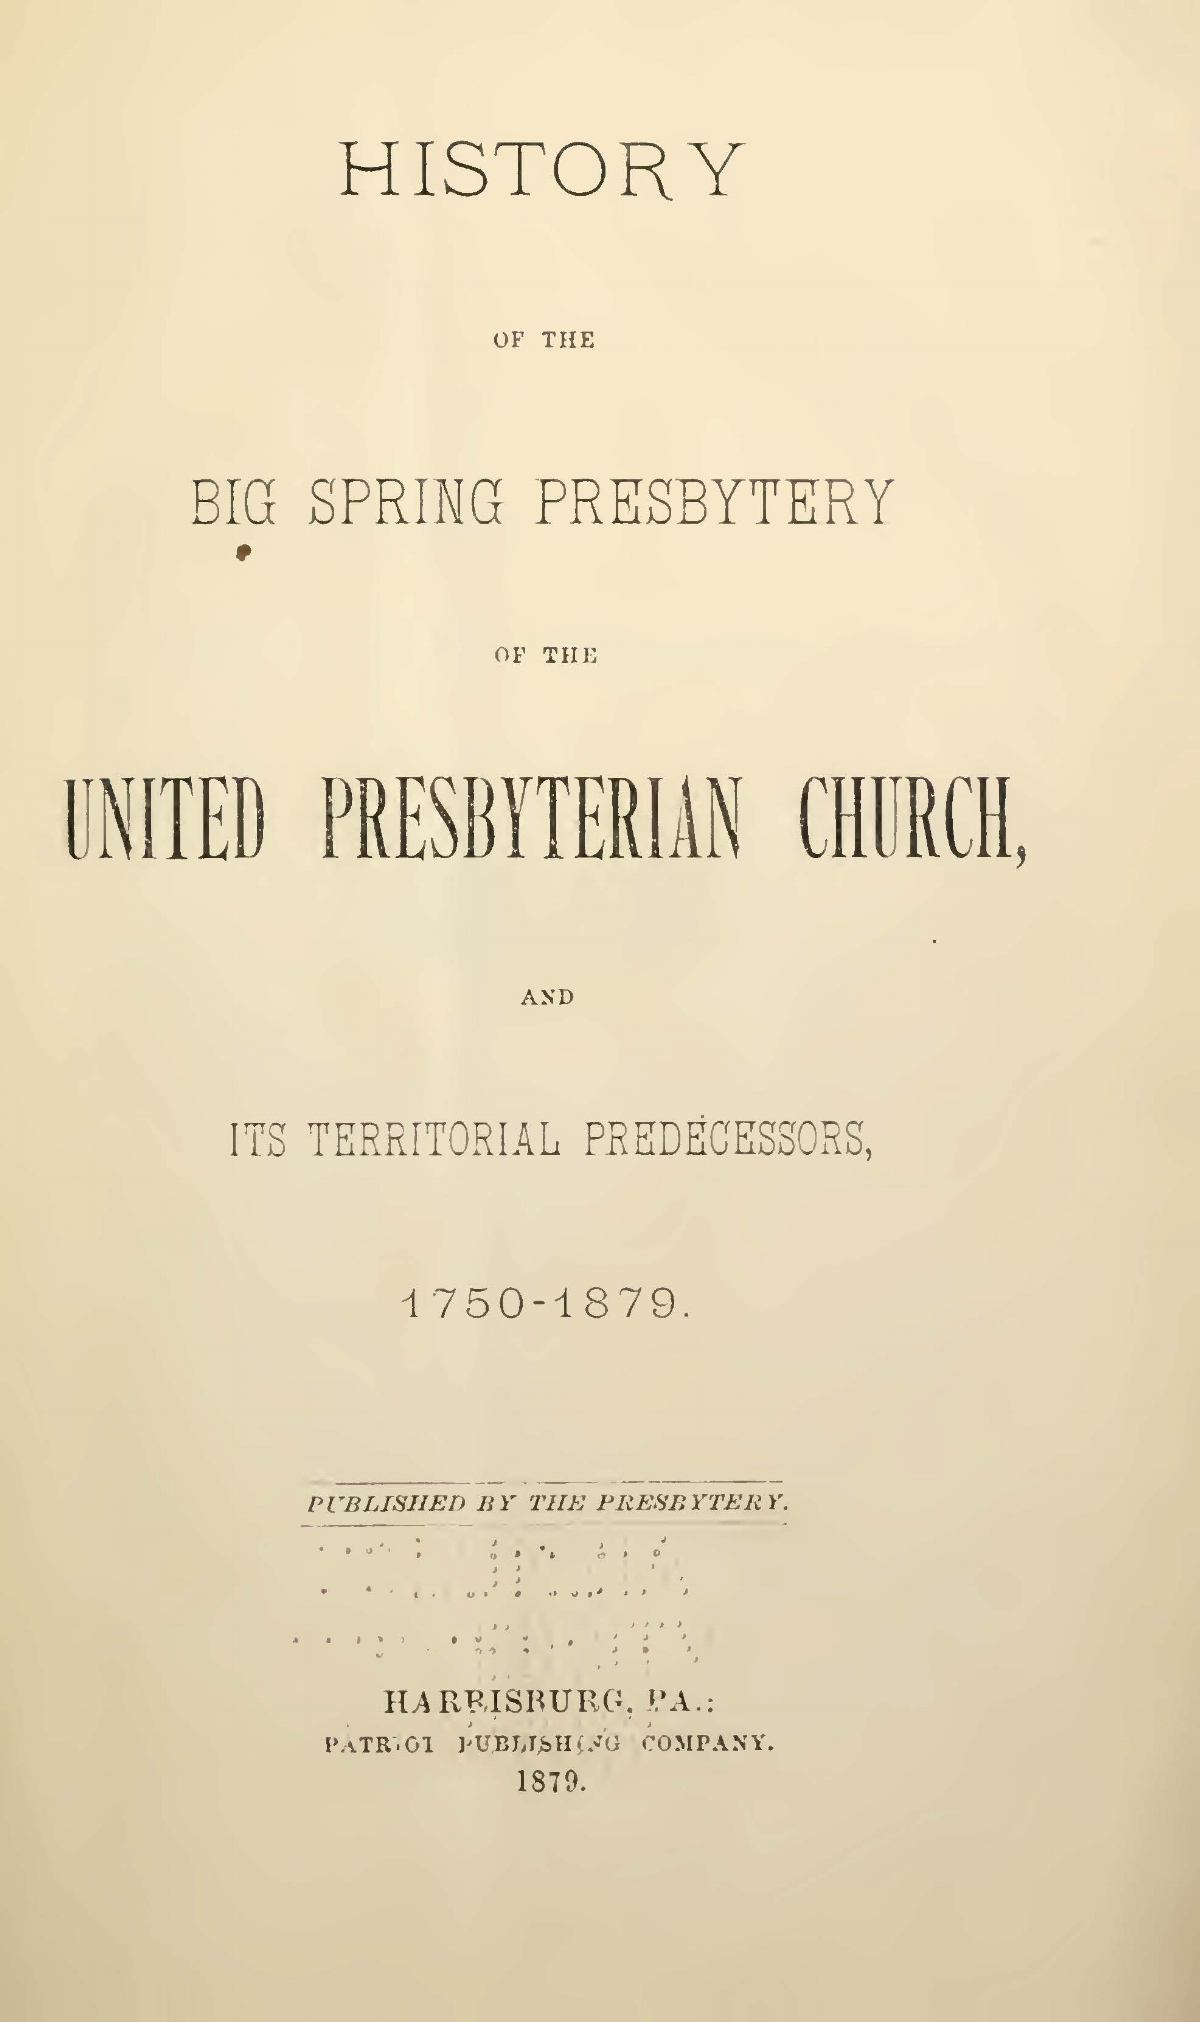 Scouller, James Brown, History of the Big Spring Presbytery of the United Presbyterian Church Title Page.jpg